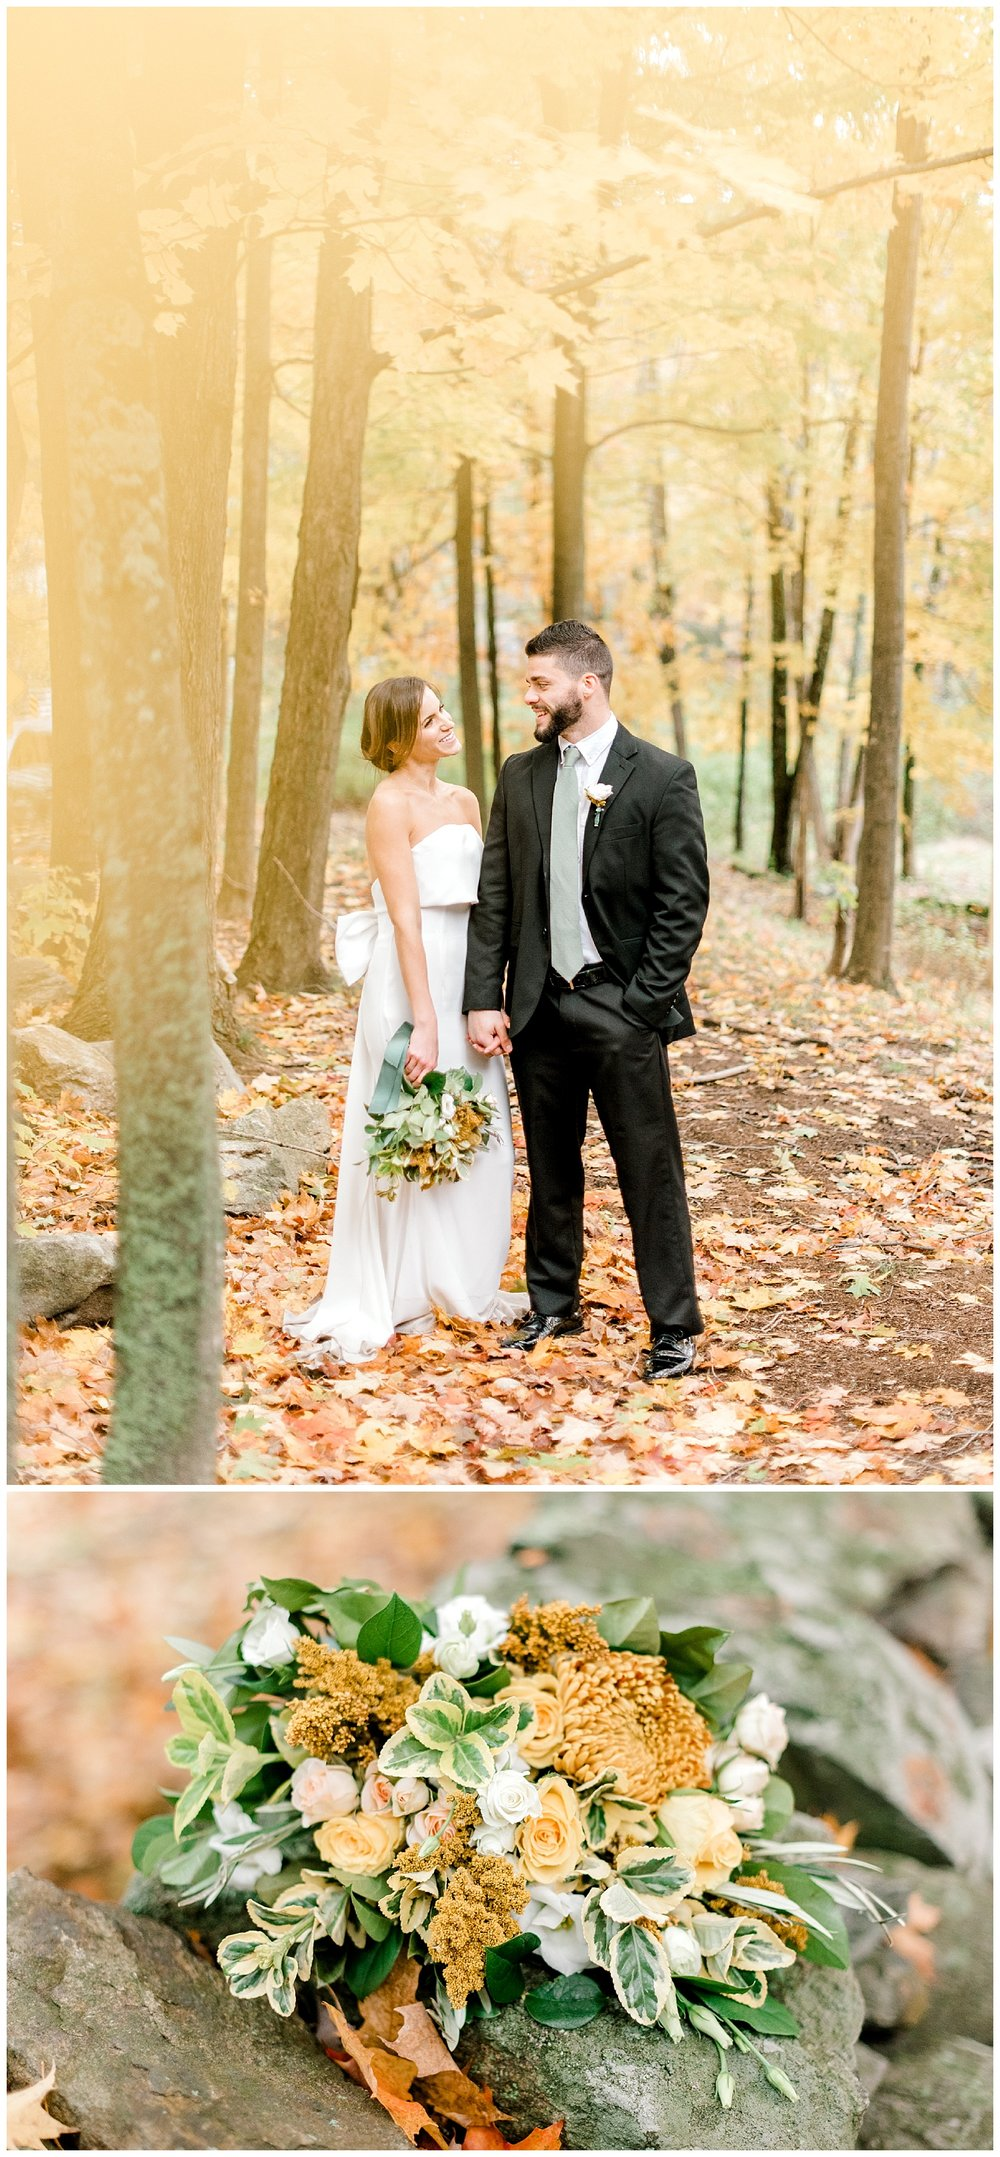 pompositticut-farm-fall-wedding-photography-hudson-massachusetts-photo-29.jpg